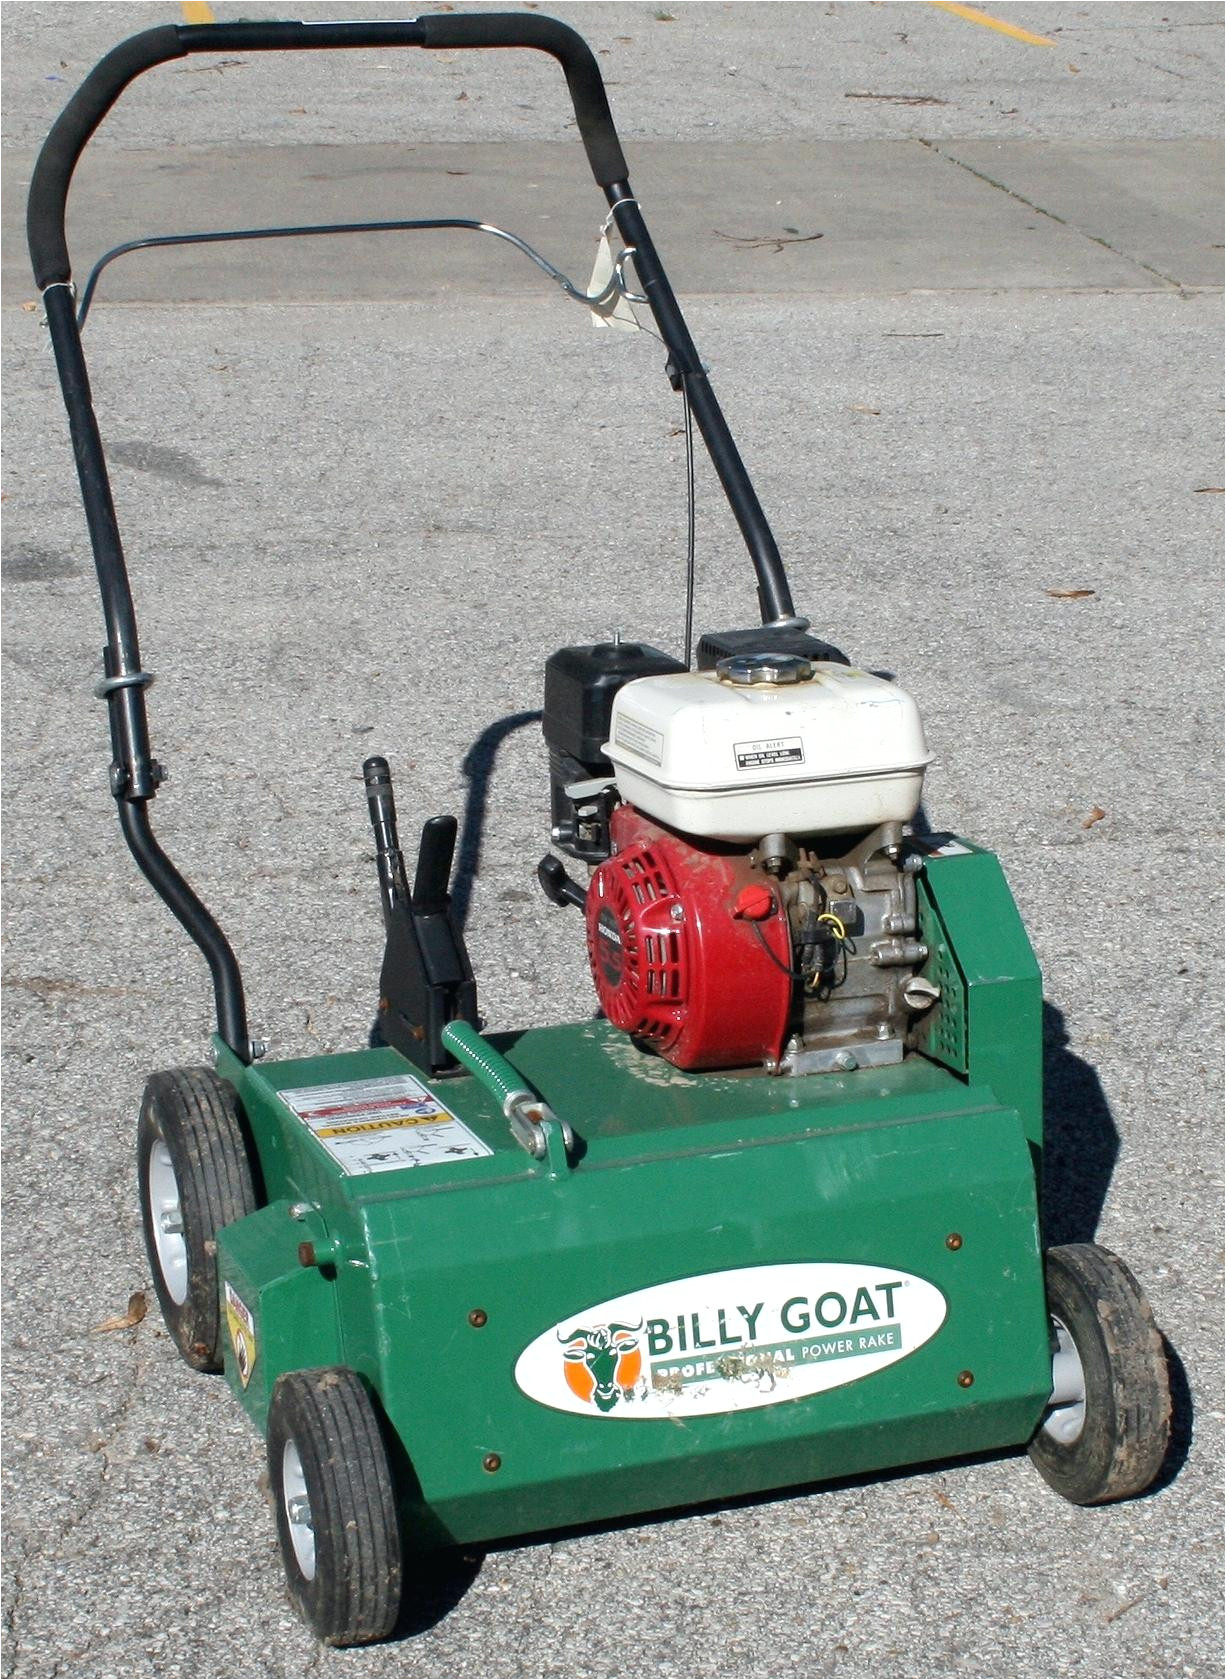 lawn aerator rental home depot cost rent midnightsuns mulcher rental home depot equipment lowes ace hardware